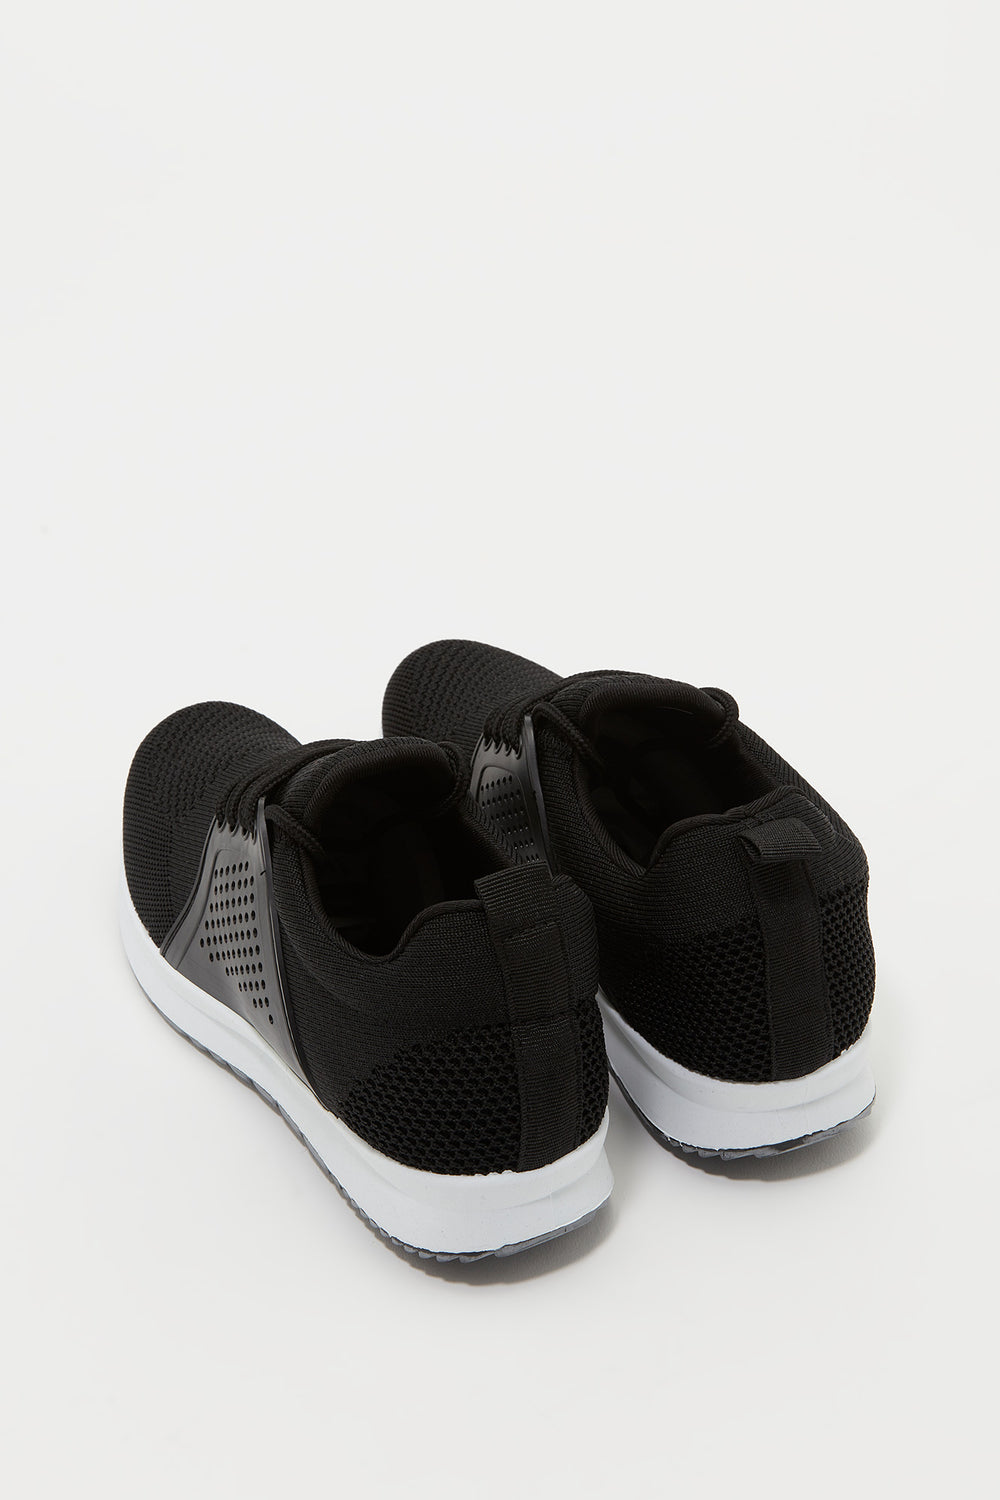 Knit Lace-Up Foam Insole Sneaker Black